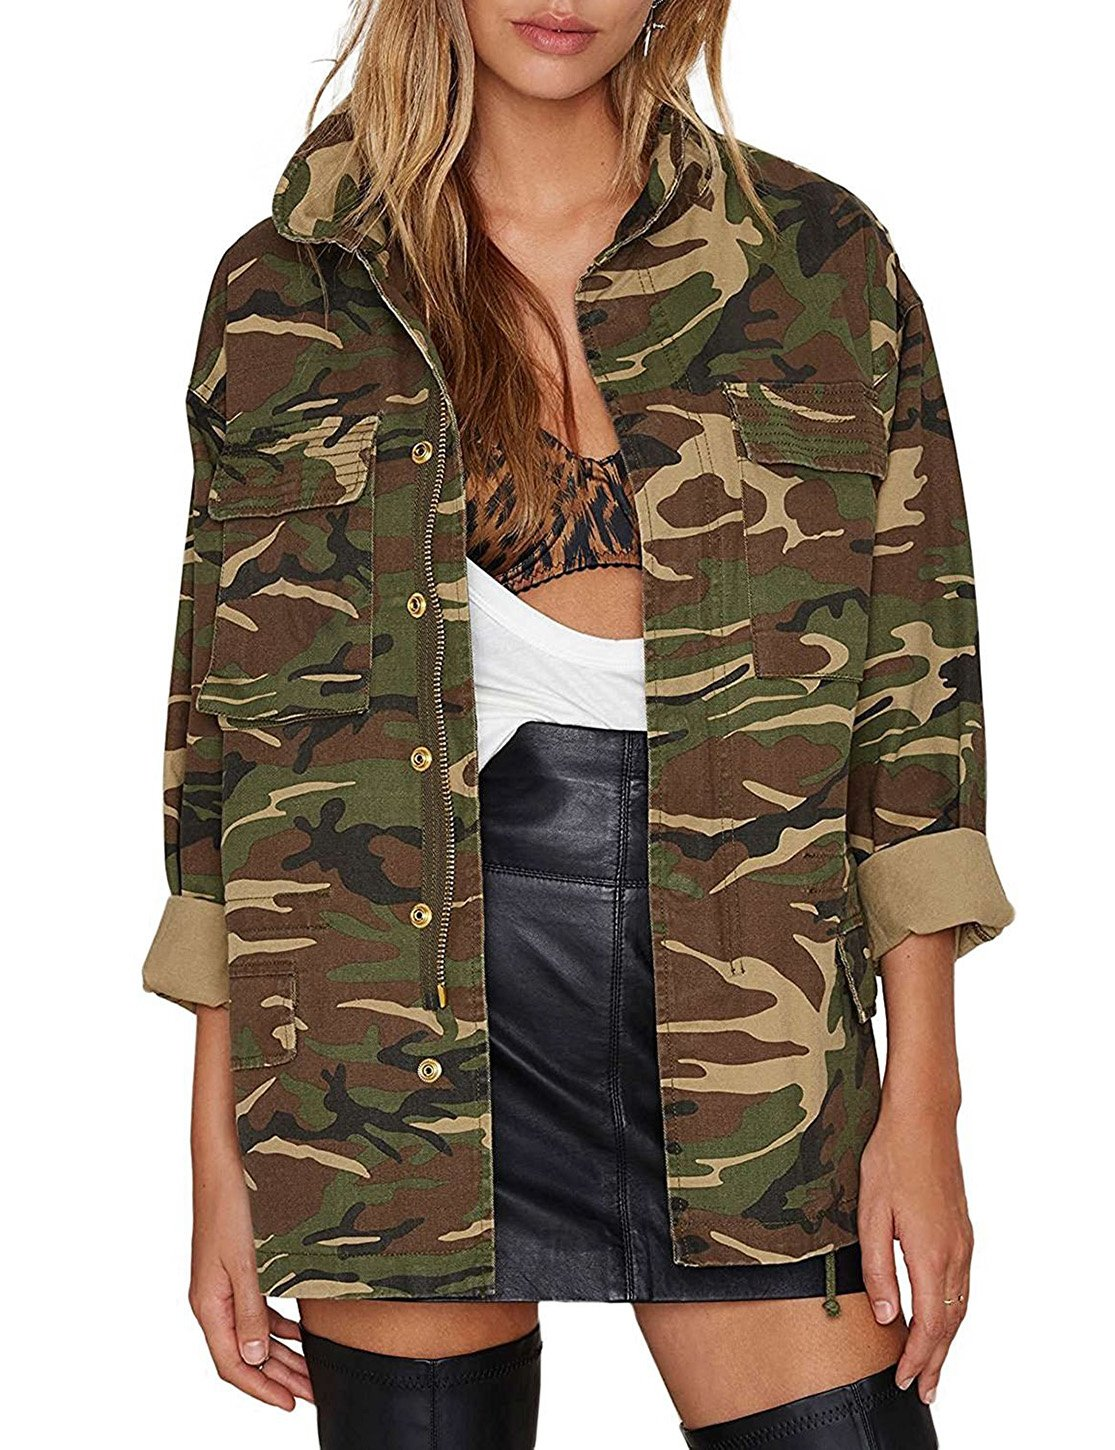 IRISIE Women Military Camo Lightweight Long Sleeve Jacket Coat(L,Army Green) by IRISIE